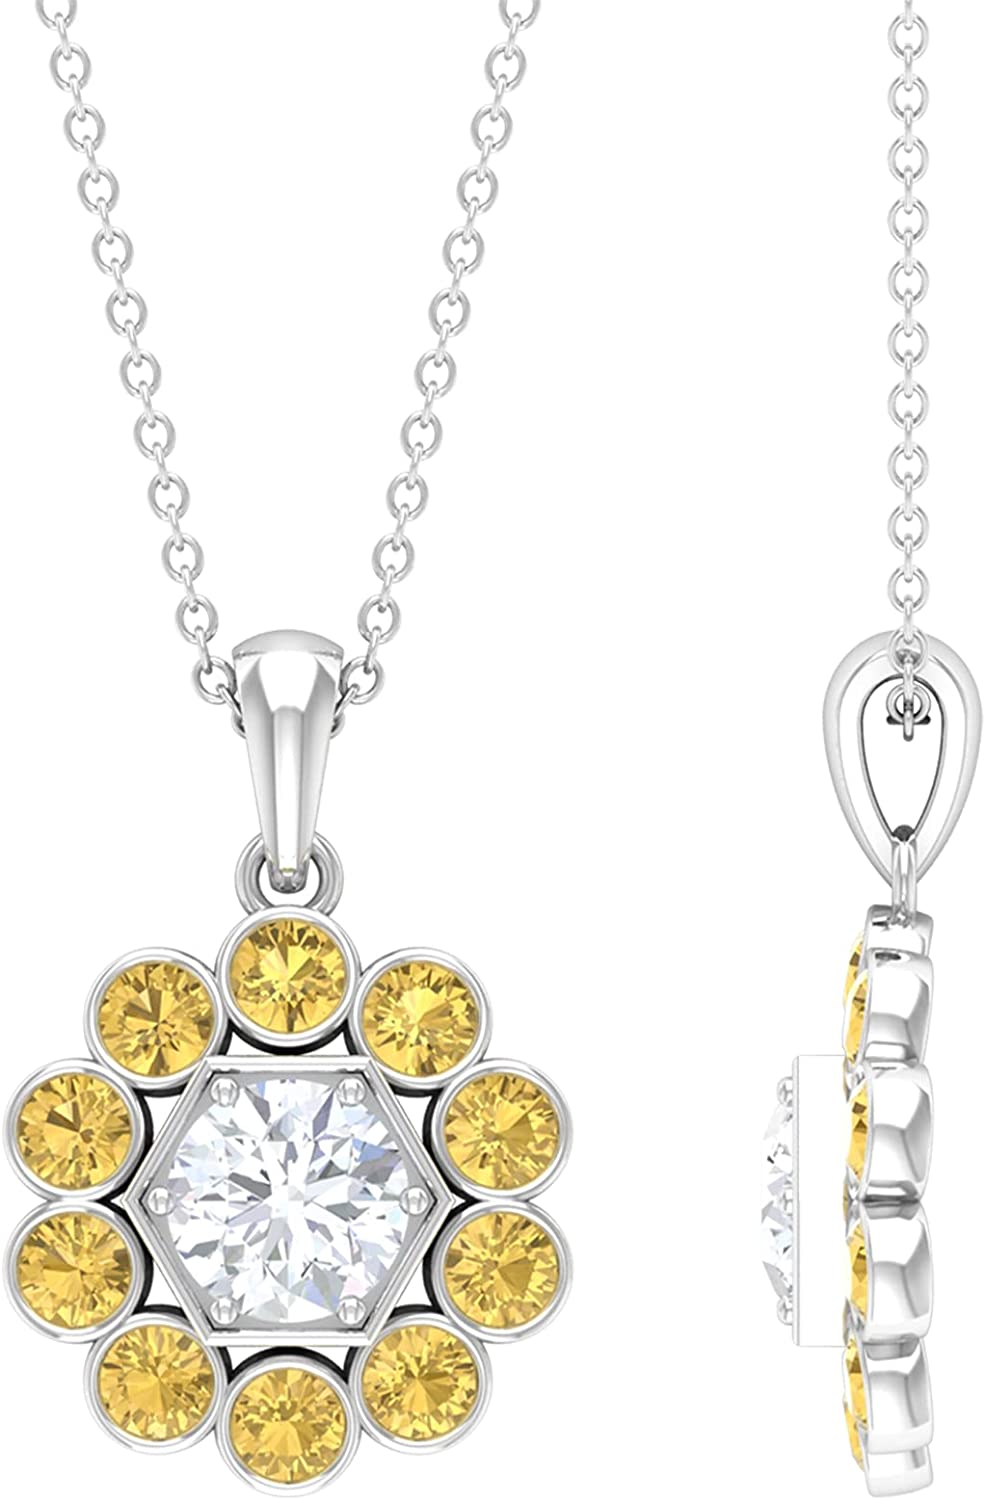 1.75 Ranking High material TOP13 CT Moissanite and Bezel Set Citrine Pendant AAA Halo Quali